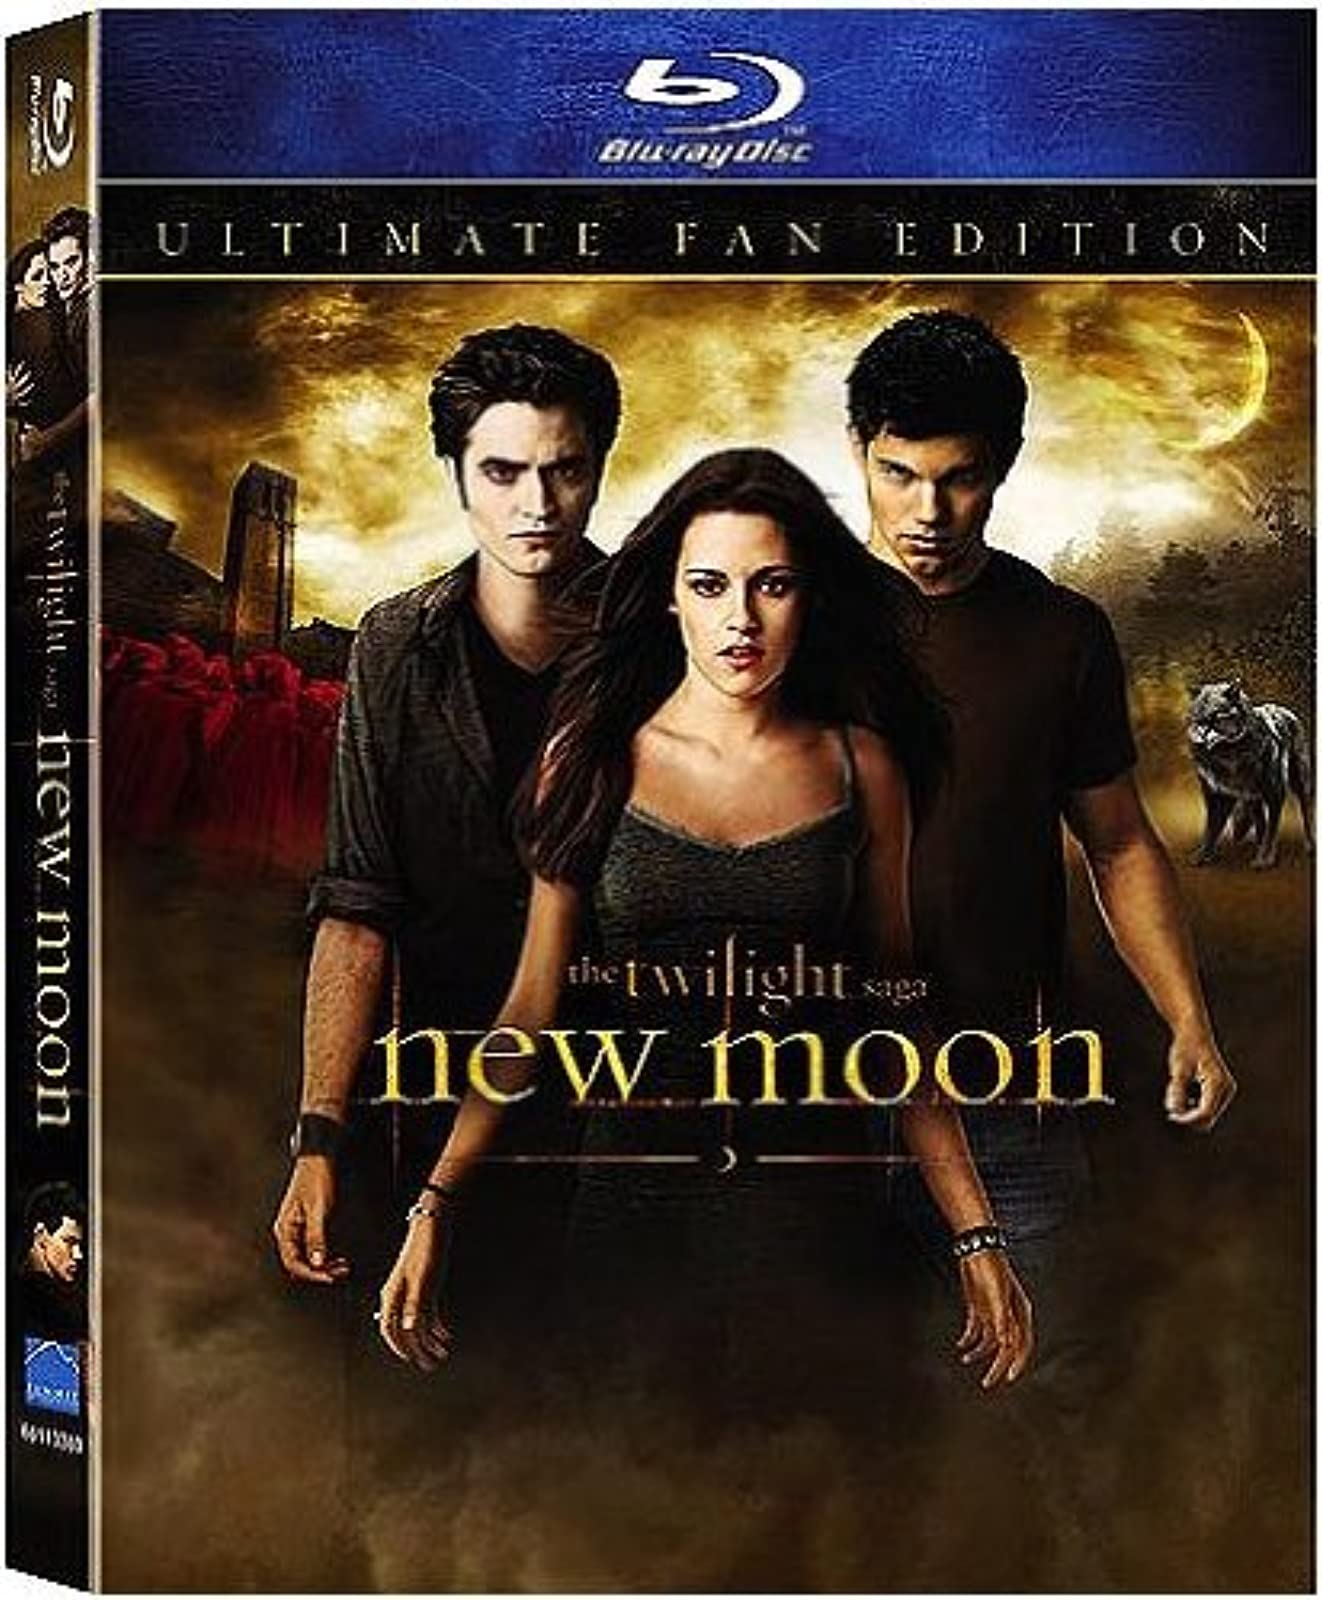 The Twilight Saga: New Moon Ultimate Fan Edition Blu-Ray With